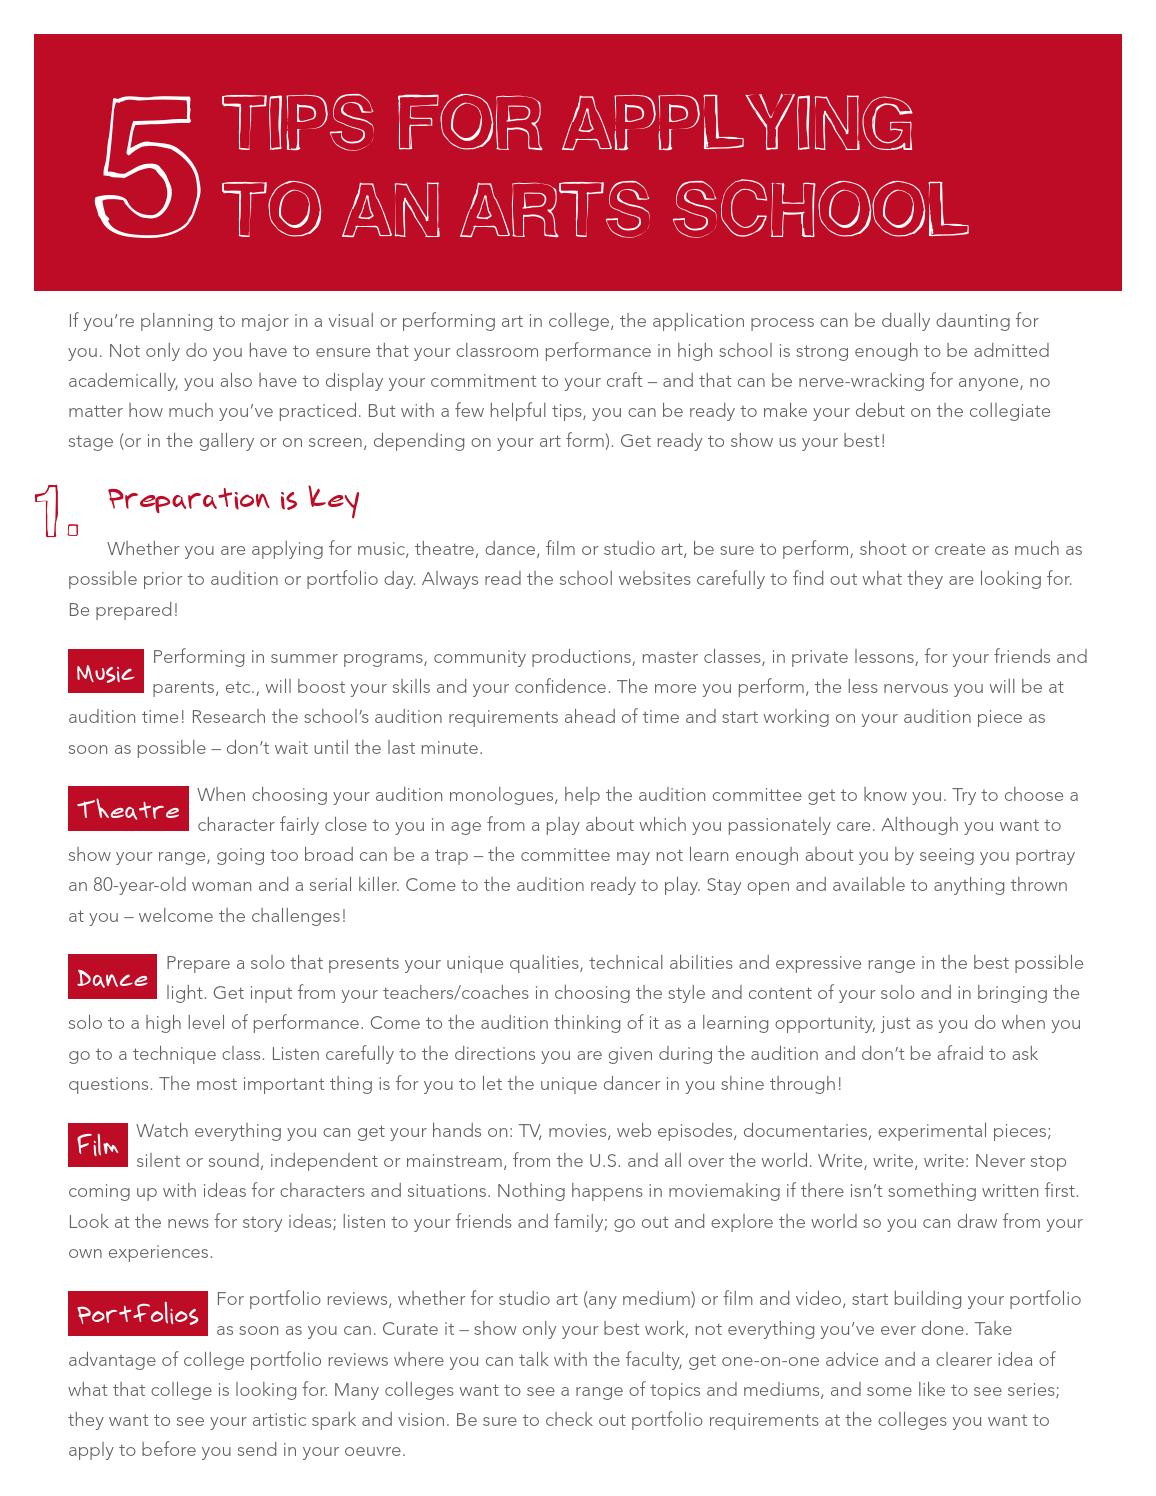 5 tips for applying to a performing or visual arts college